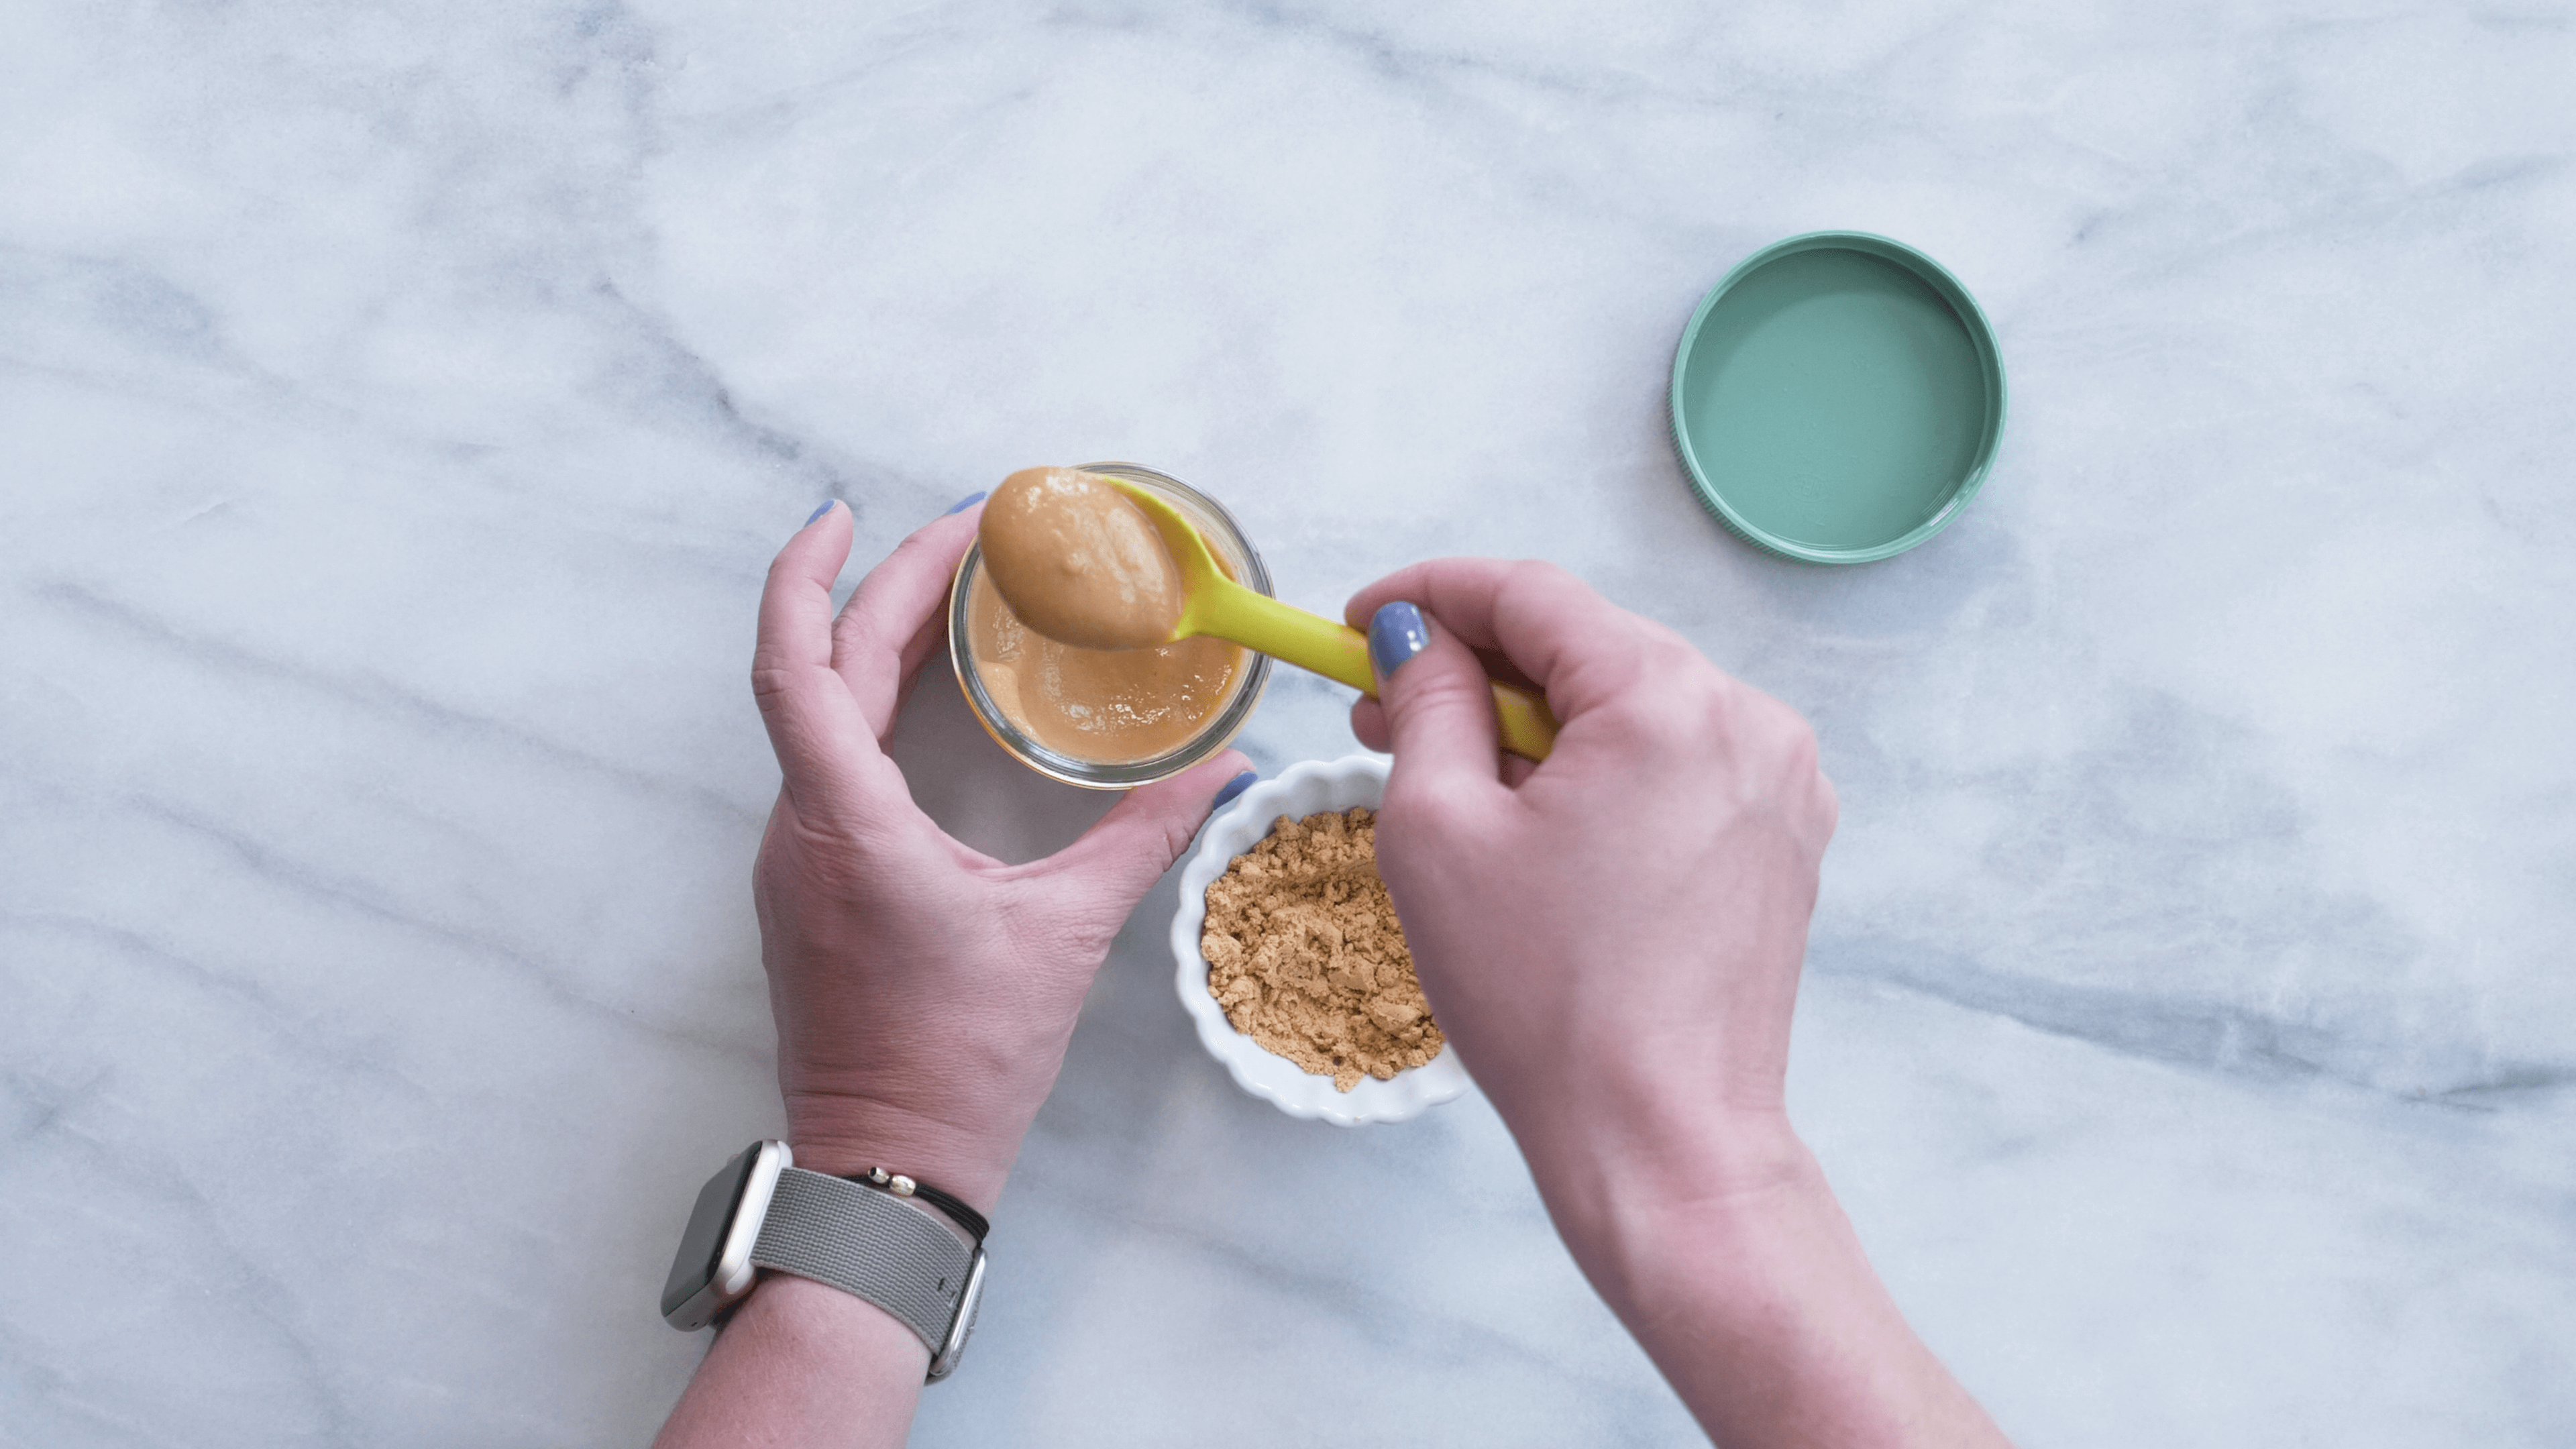 Add powdered peanut butter to puree. With the latest research suggesting early peanut introduction, we've rounded up 8 ways on how to feed peanut butter to baby.